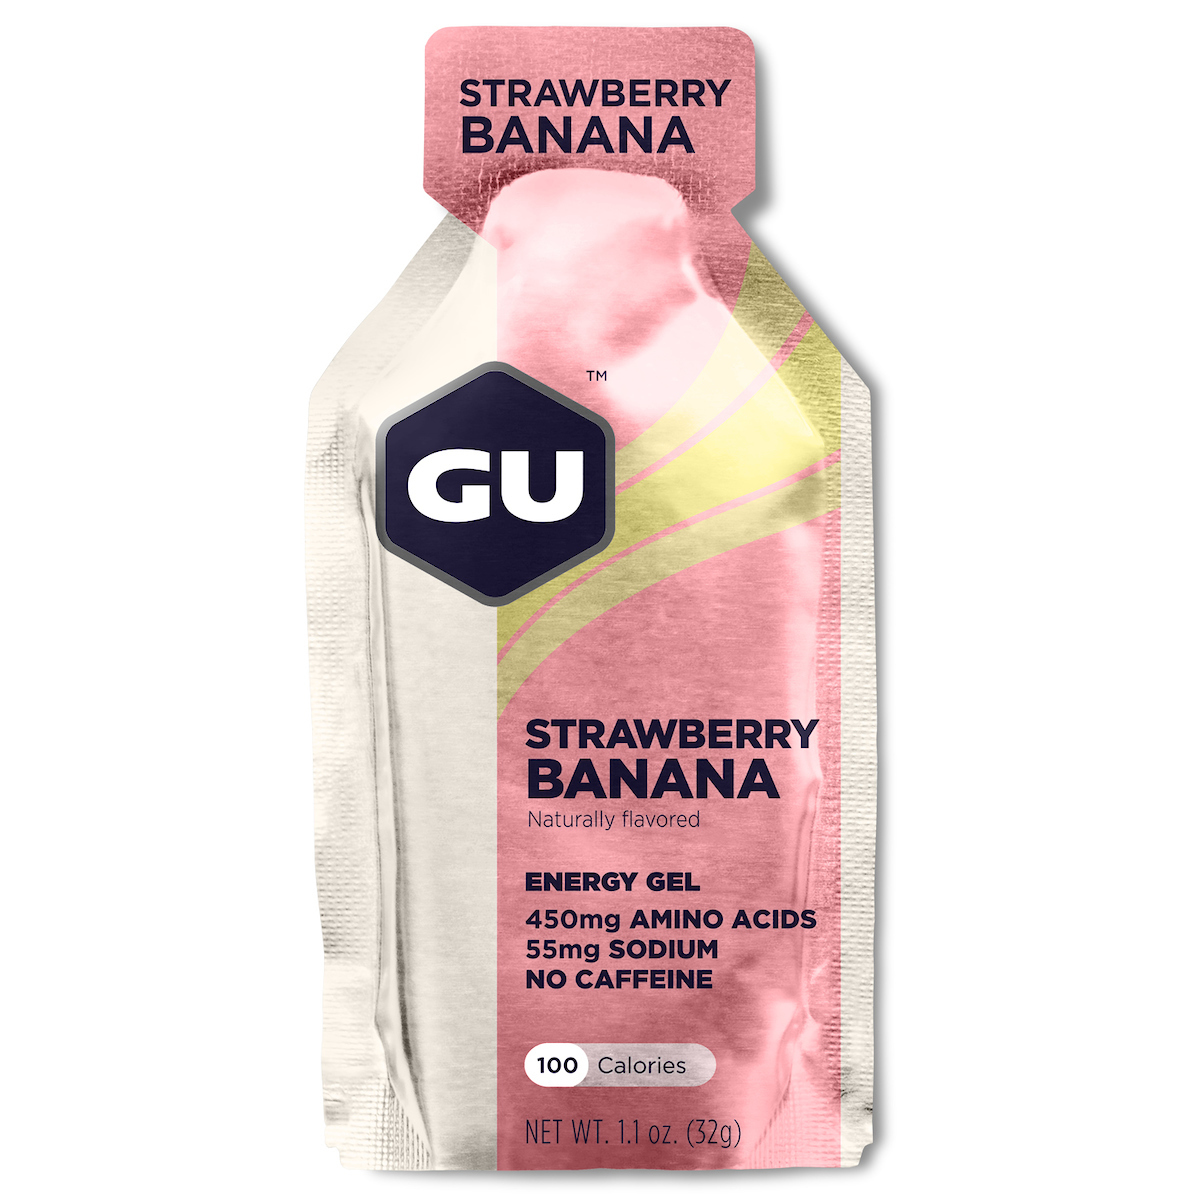 NPEU Strawberry Banana, GU Gel, 24 Pkt Ctn